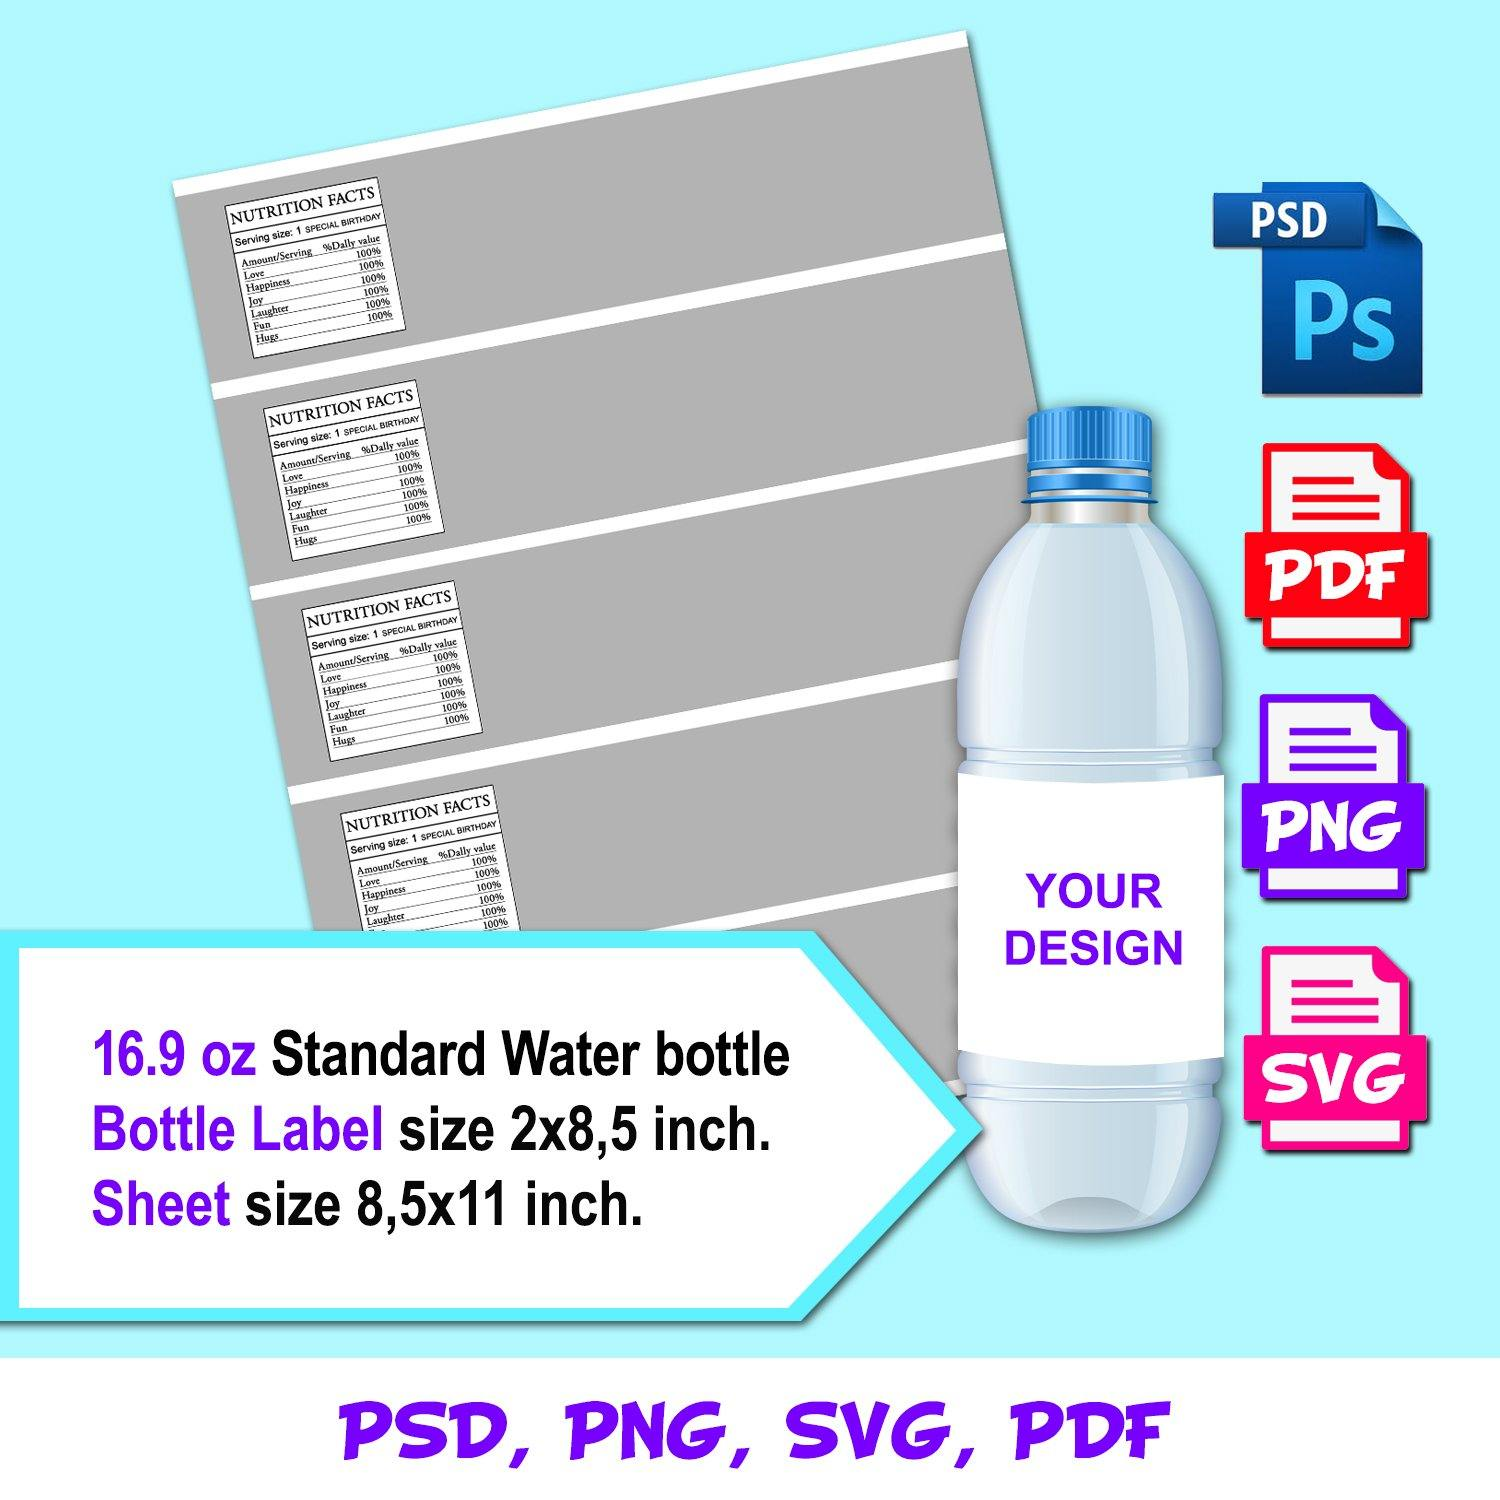 Water Bottle Labels Template, Instant Download Water Bottle Labels Template, PSD, PNG, SVG, PDF - mariiadesignshop